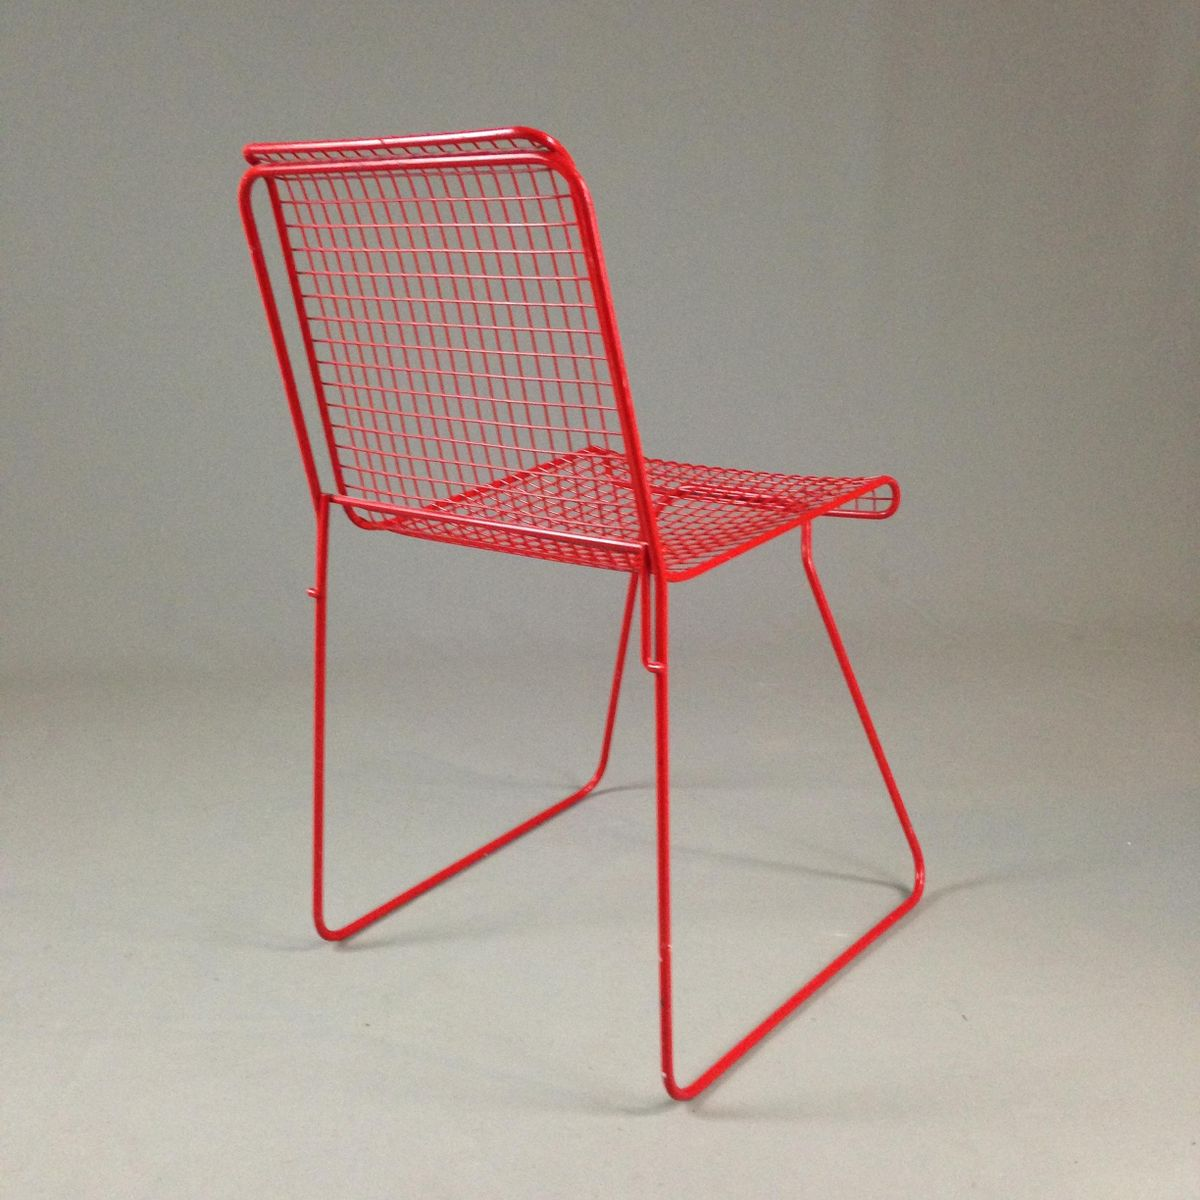 Red lacquered metal chair 1980s for sale at pamono for 1980s chair